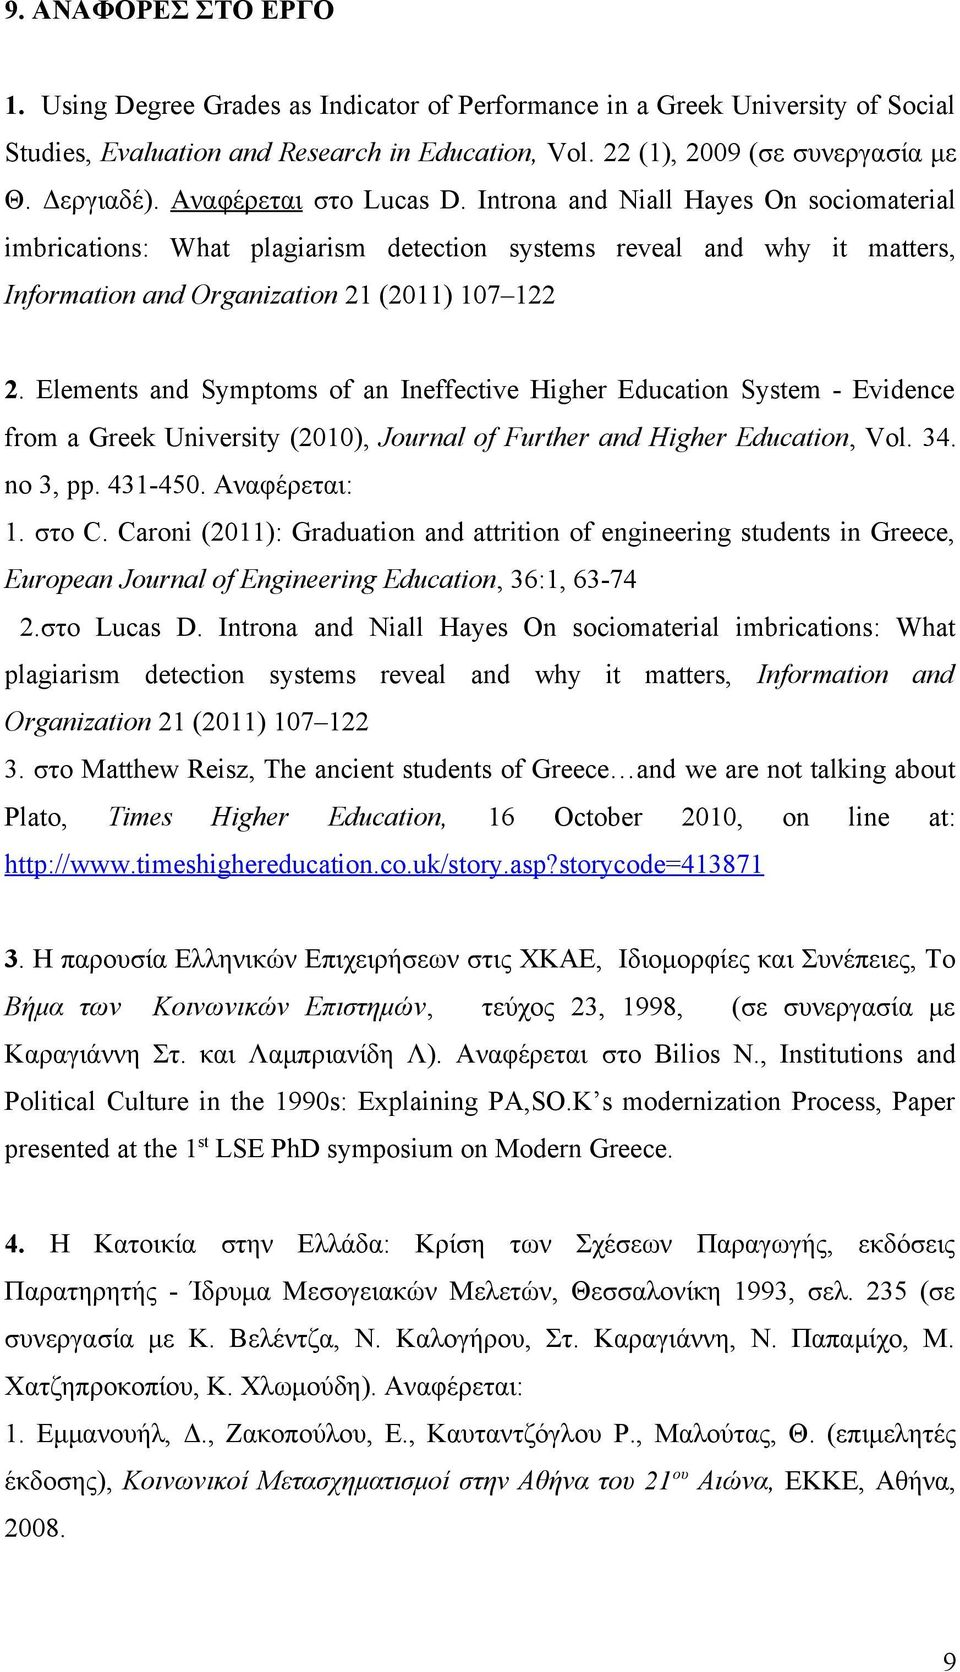 Elements and Symptoms of an Ineffective Higher Education System - Evidence from a Greek University (2010), Journal of Further and Higher Education, Vol. 34. no 3, pp. 431-450. Αναφέρεται: 1. στο C.